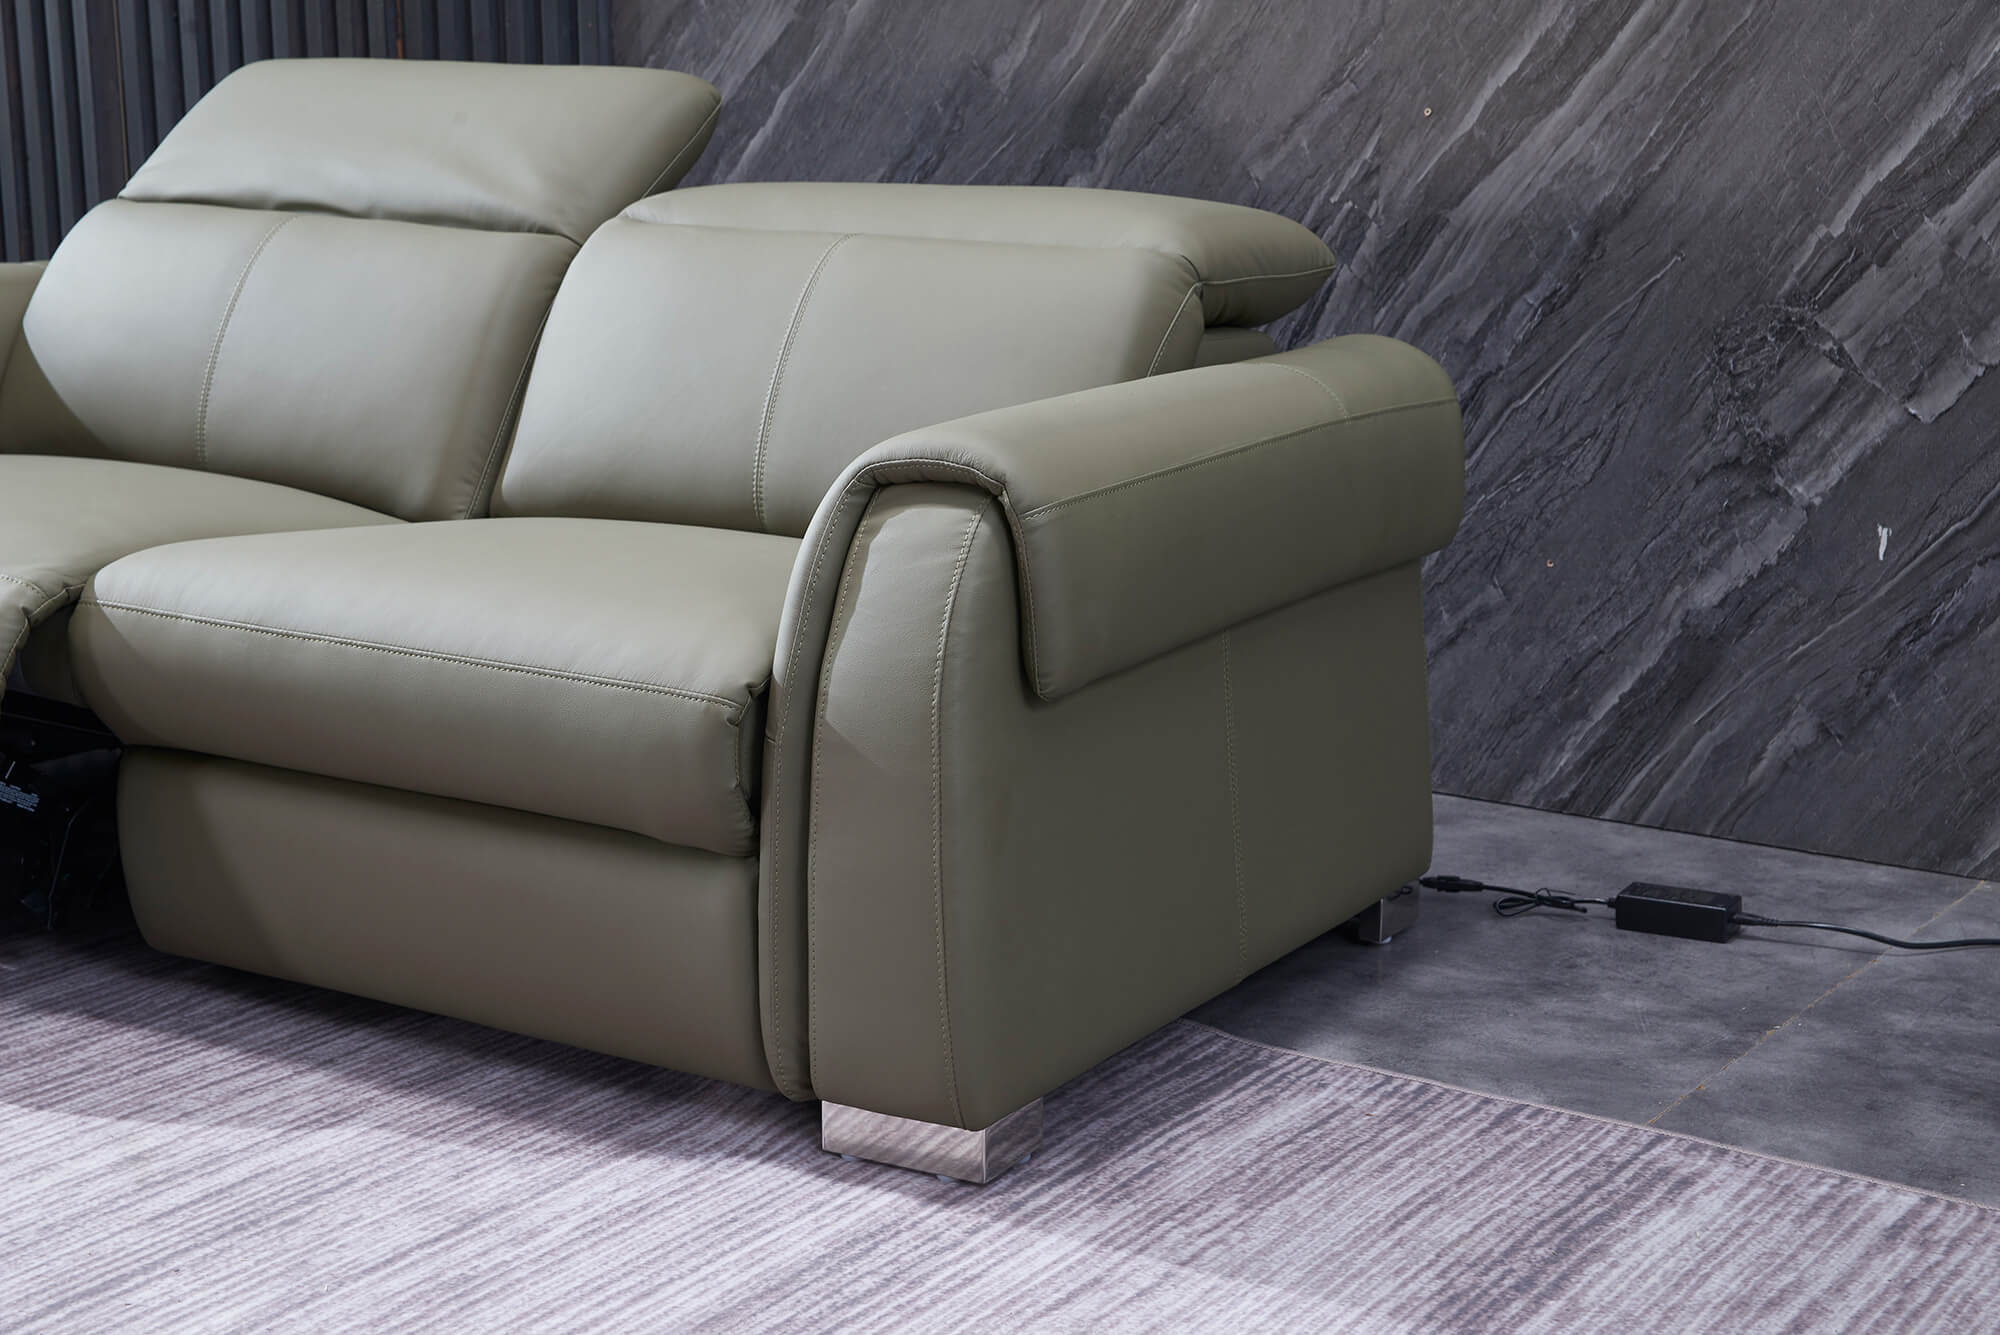 olive leather electric recliner sofa 2 seater reclined closeup